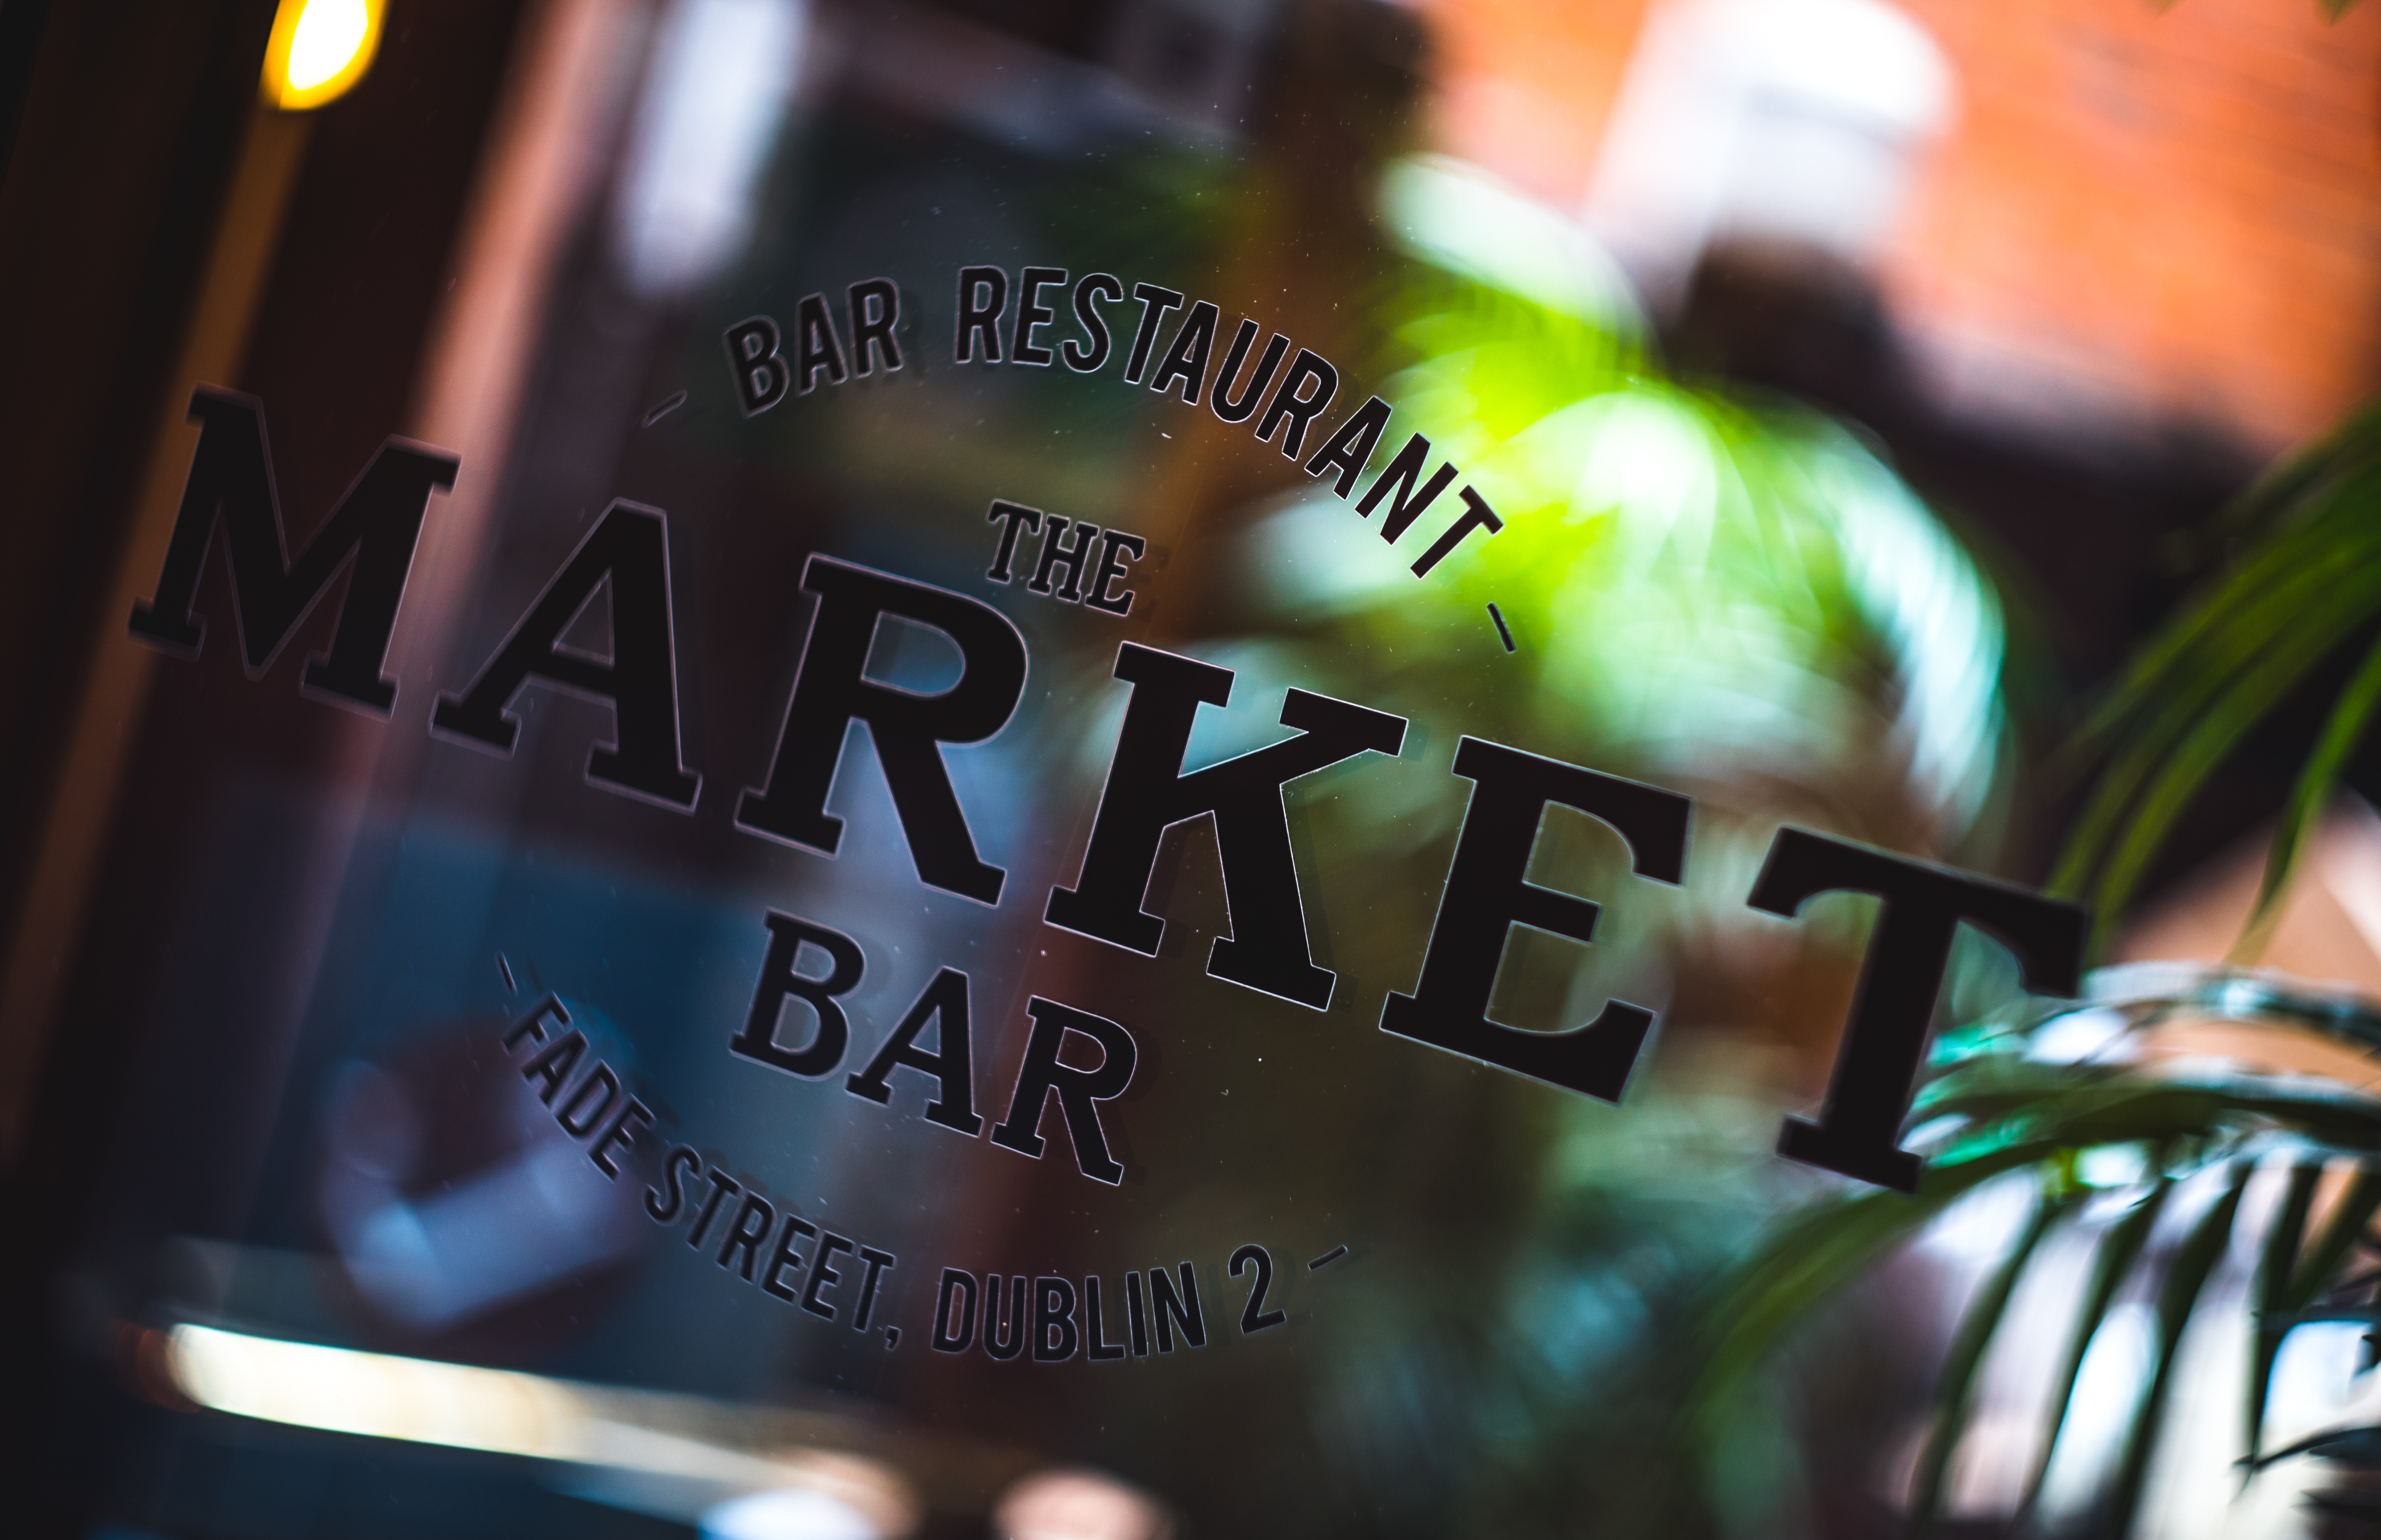 The Market Bar Group